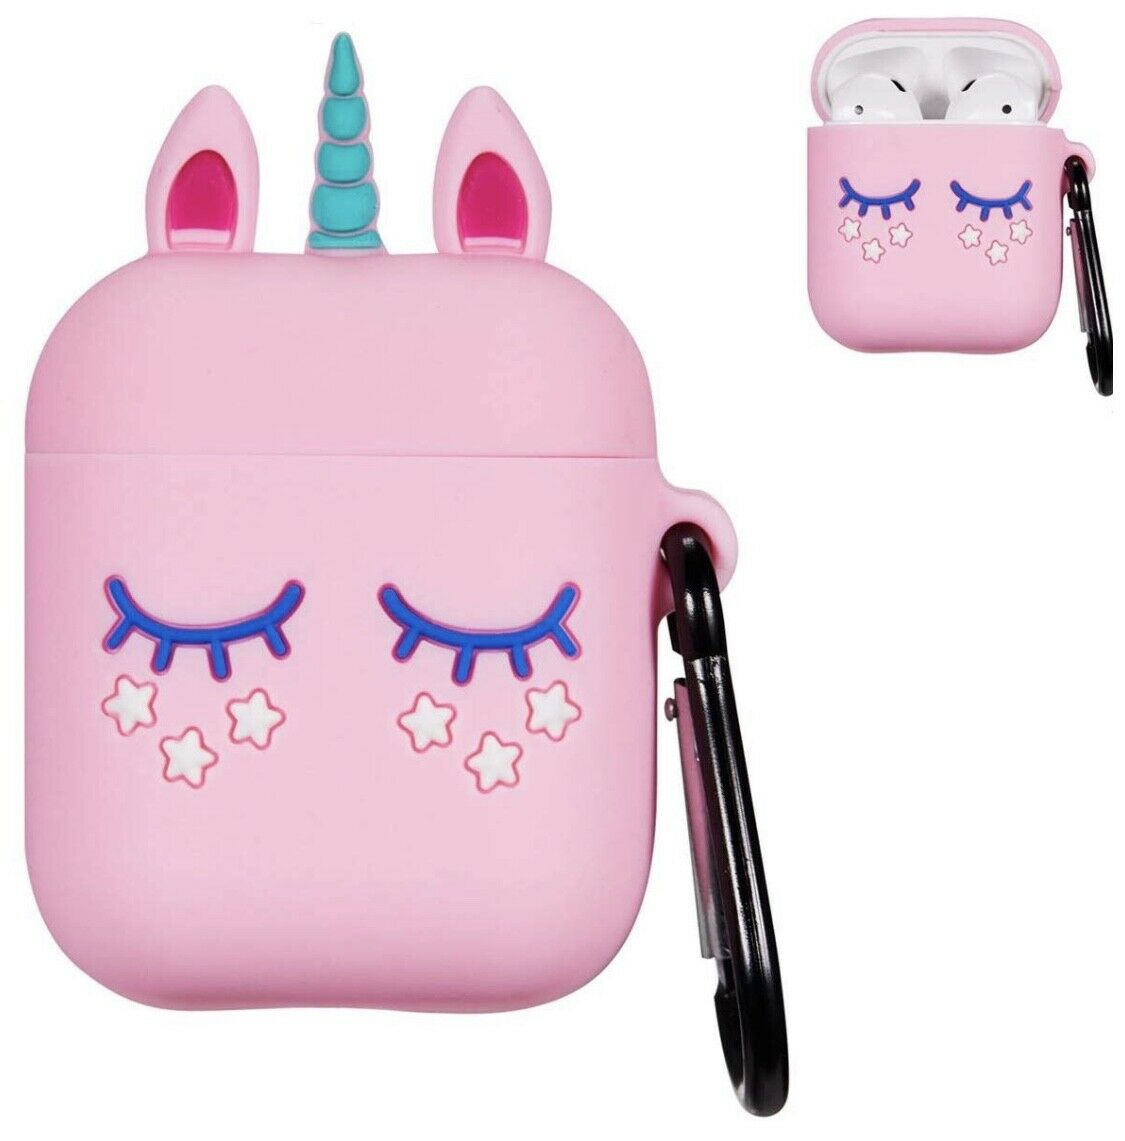 Pink Unicorn Airpod Case for Apple Airpods Cute 3D Soft  Silicone with KeyChain Cases, Covers & Skins